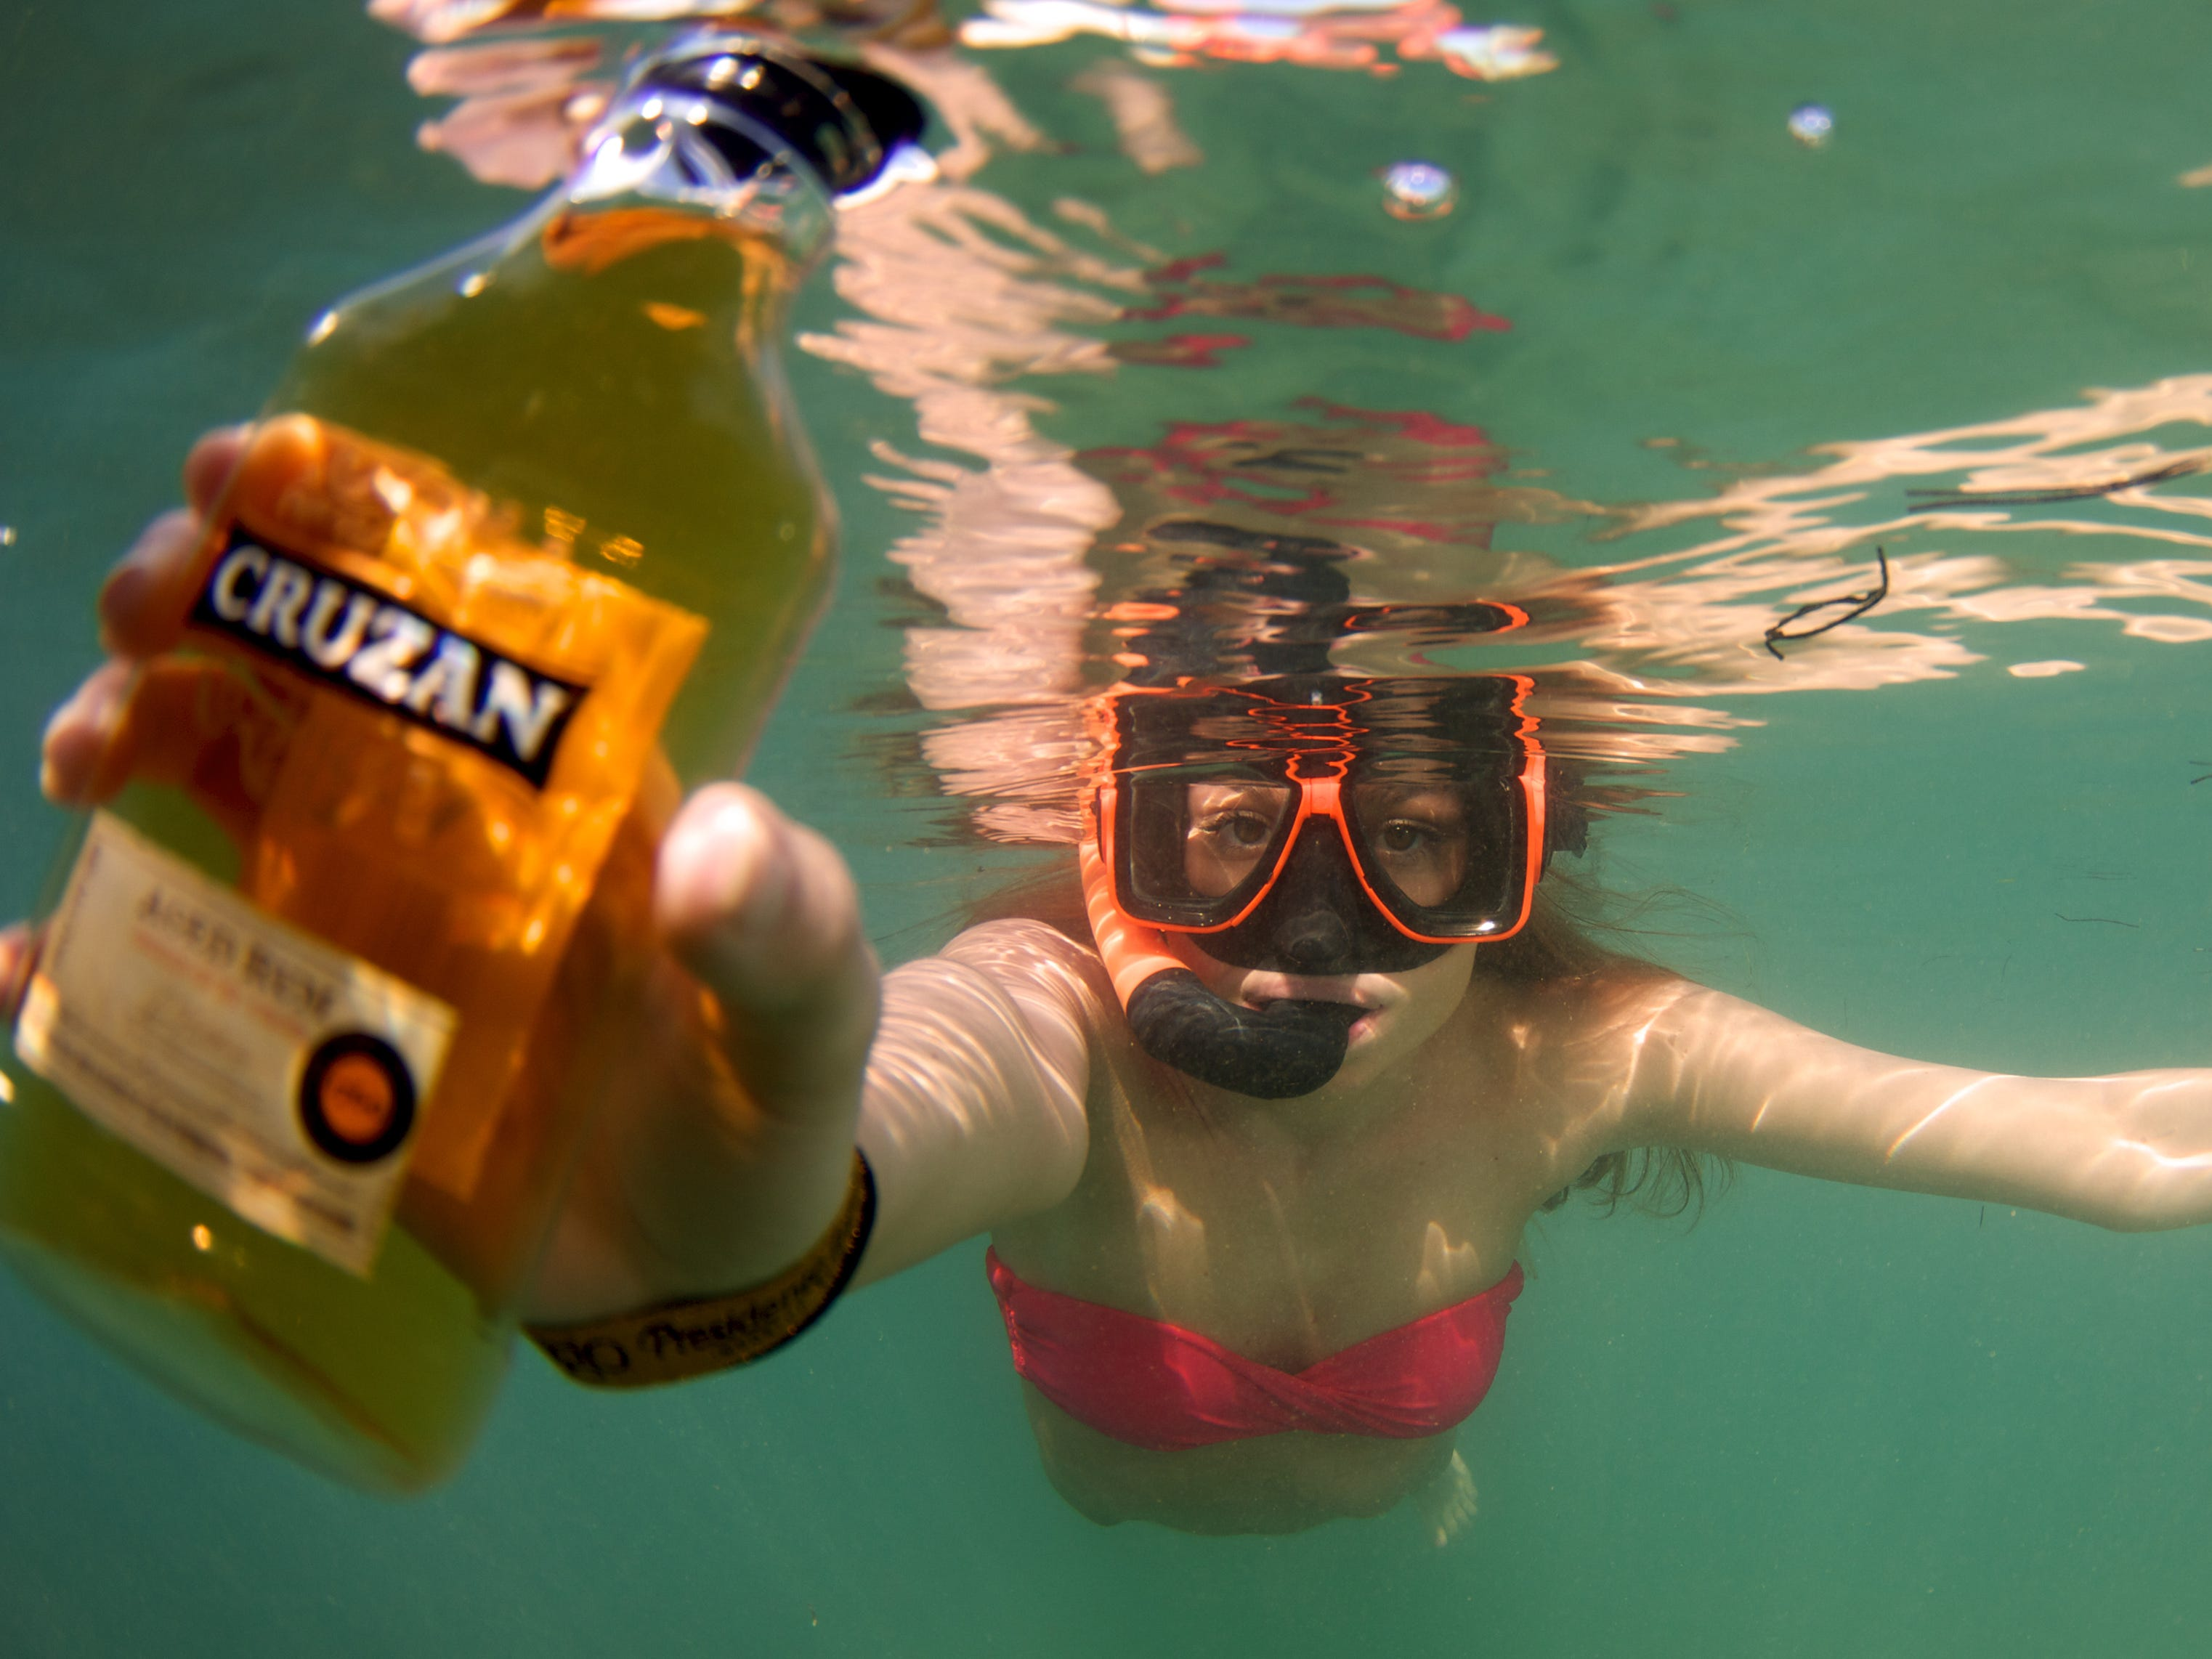 Donning snorkel gear, visitors comb the waters for hidden bottles of Cruzan Rum  distilled next door in St. Croix.